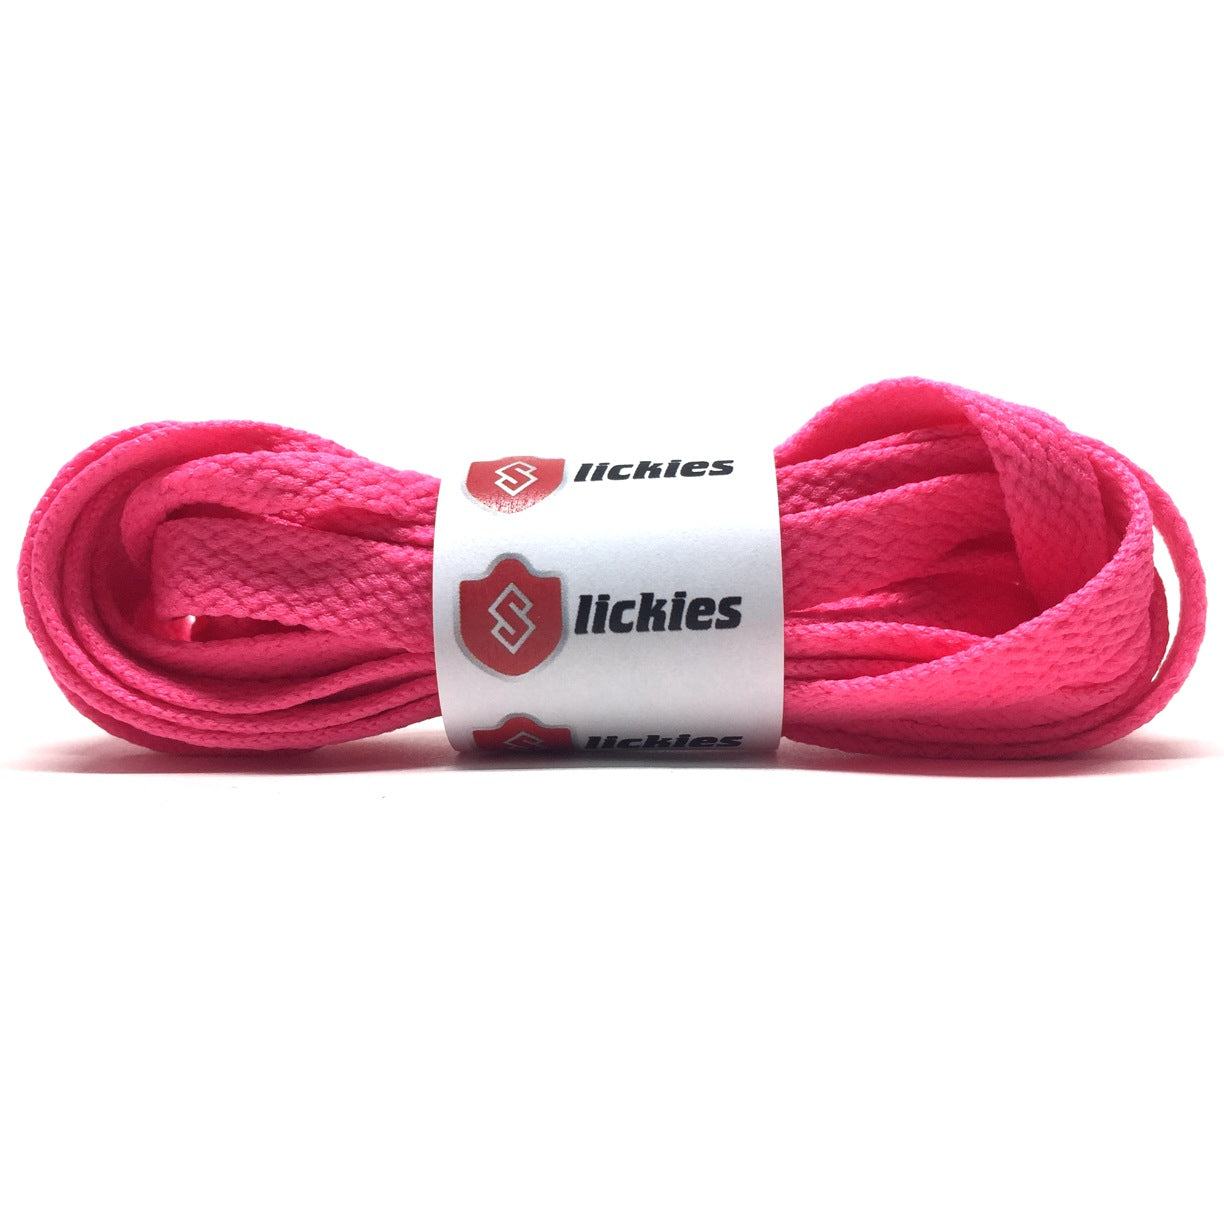 Flat Thin - BASICS Flat Thin Laces - Flash Pink